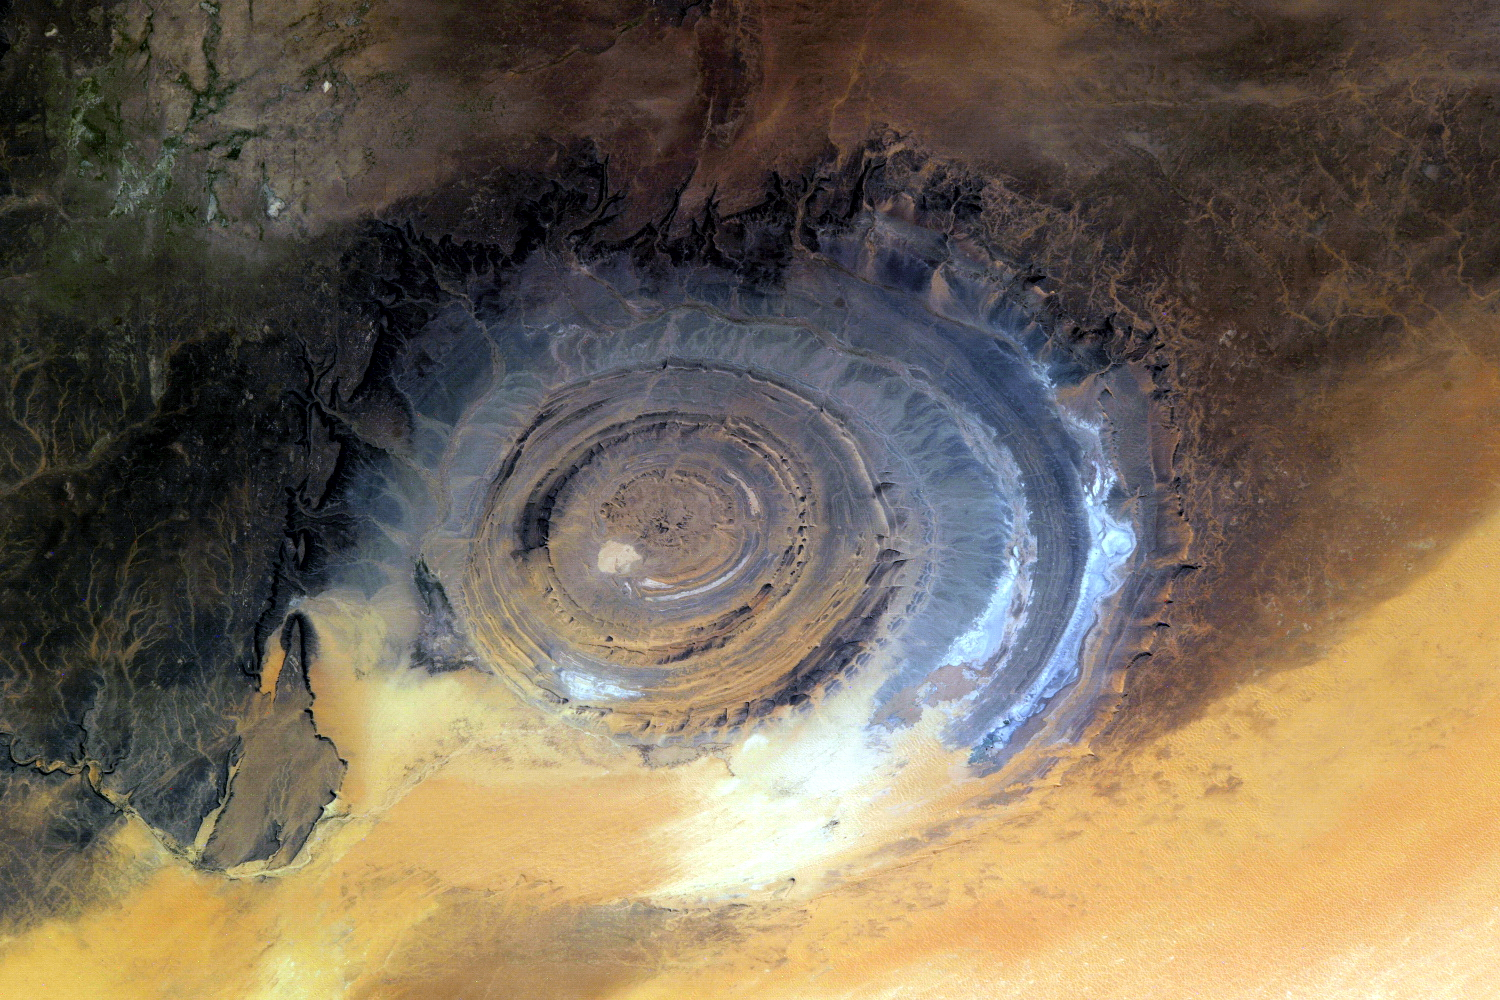 Richat Structure - The peculiar yet strikingly impressive Eye of the Sahara